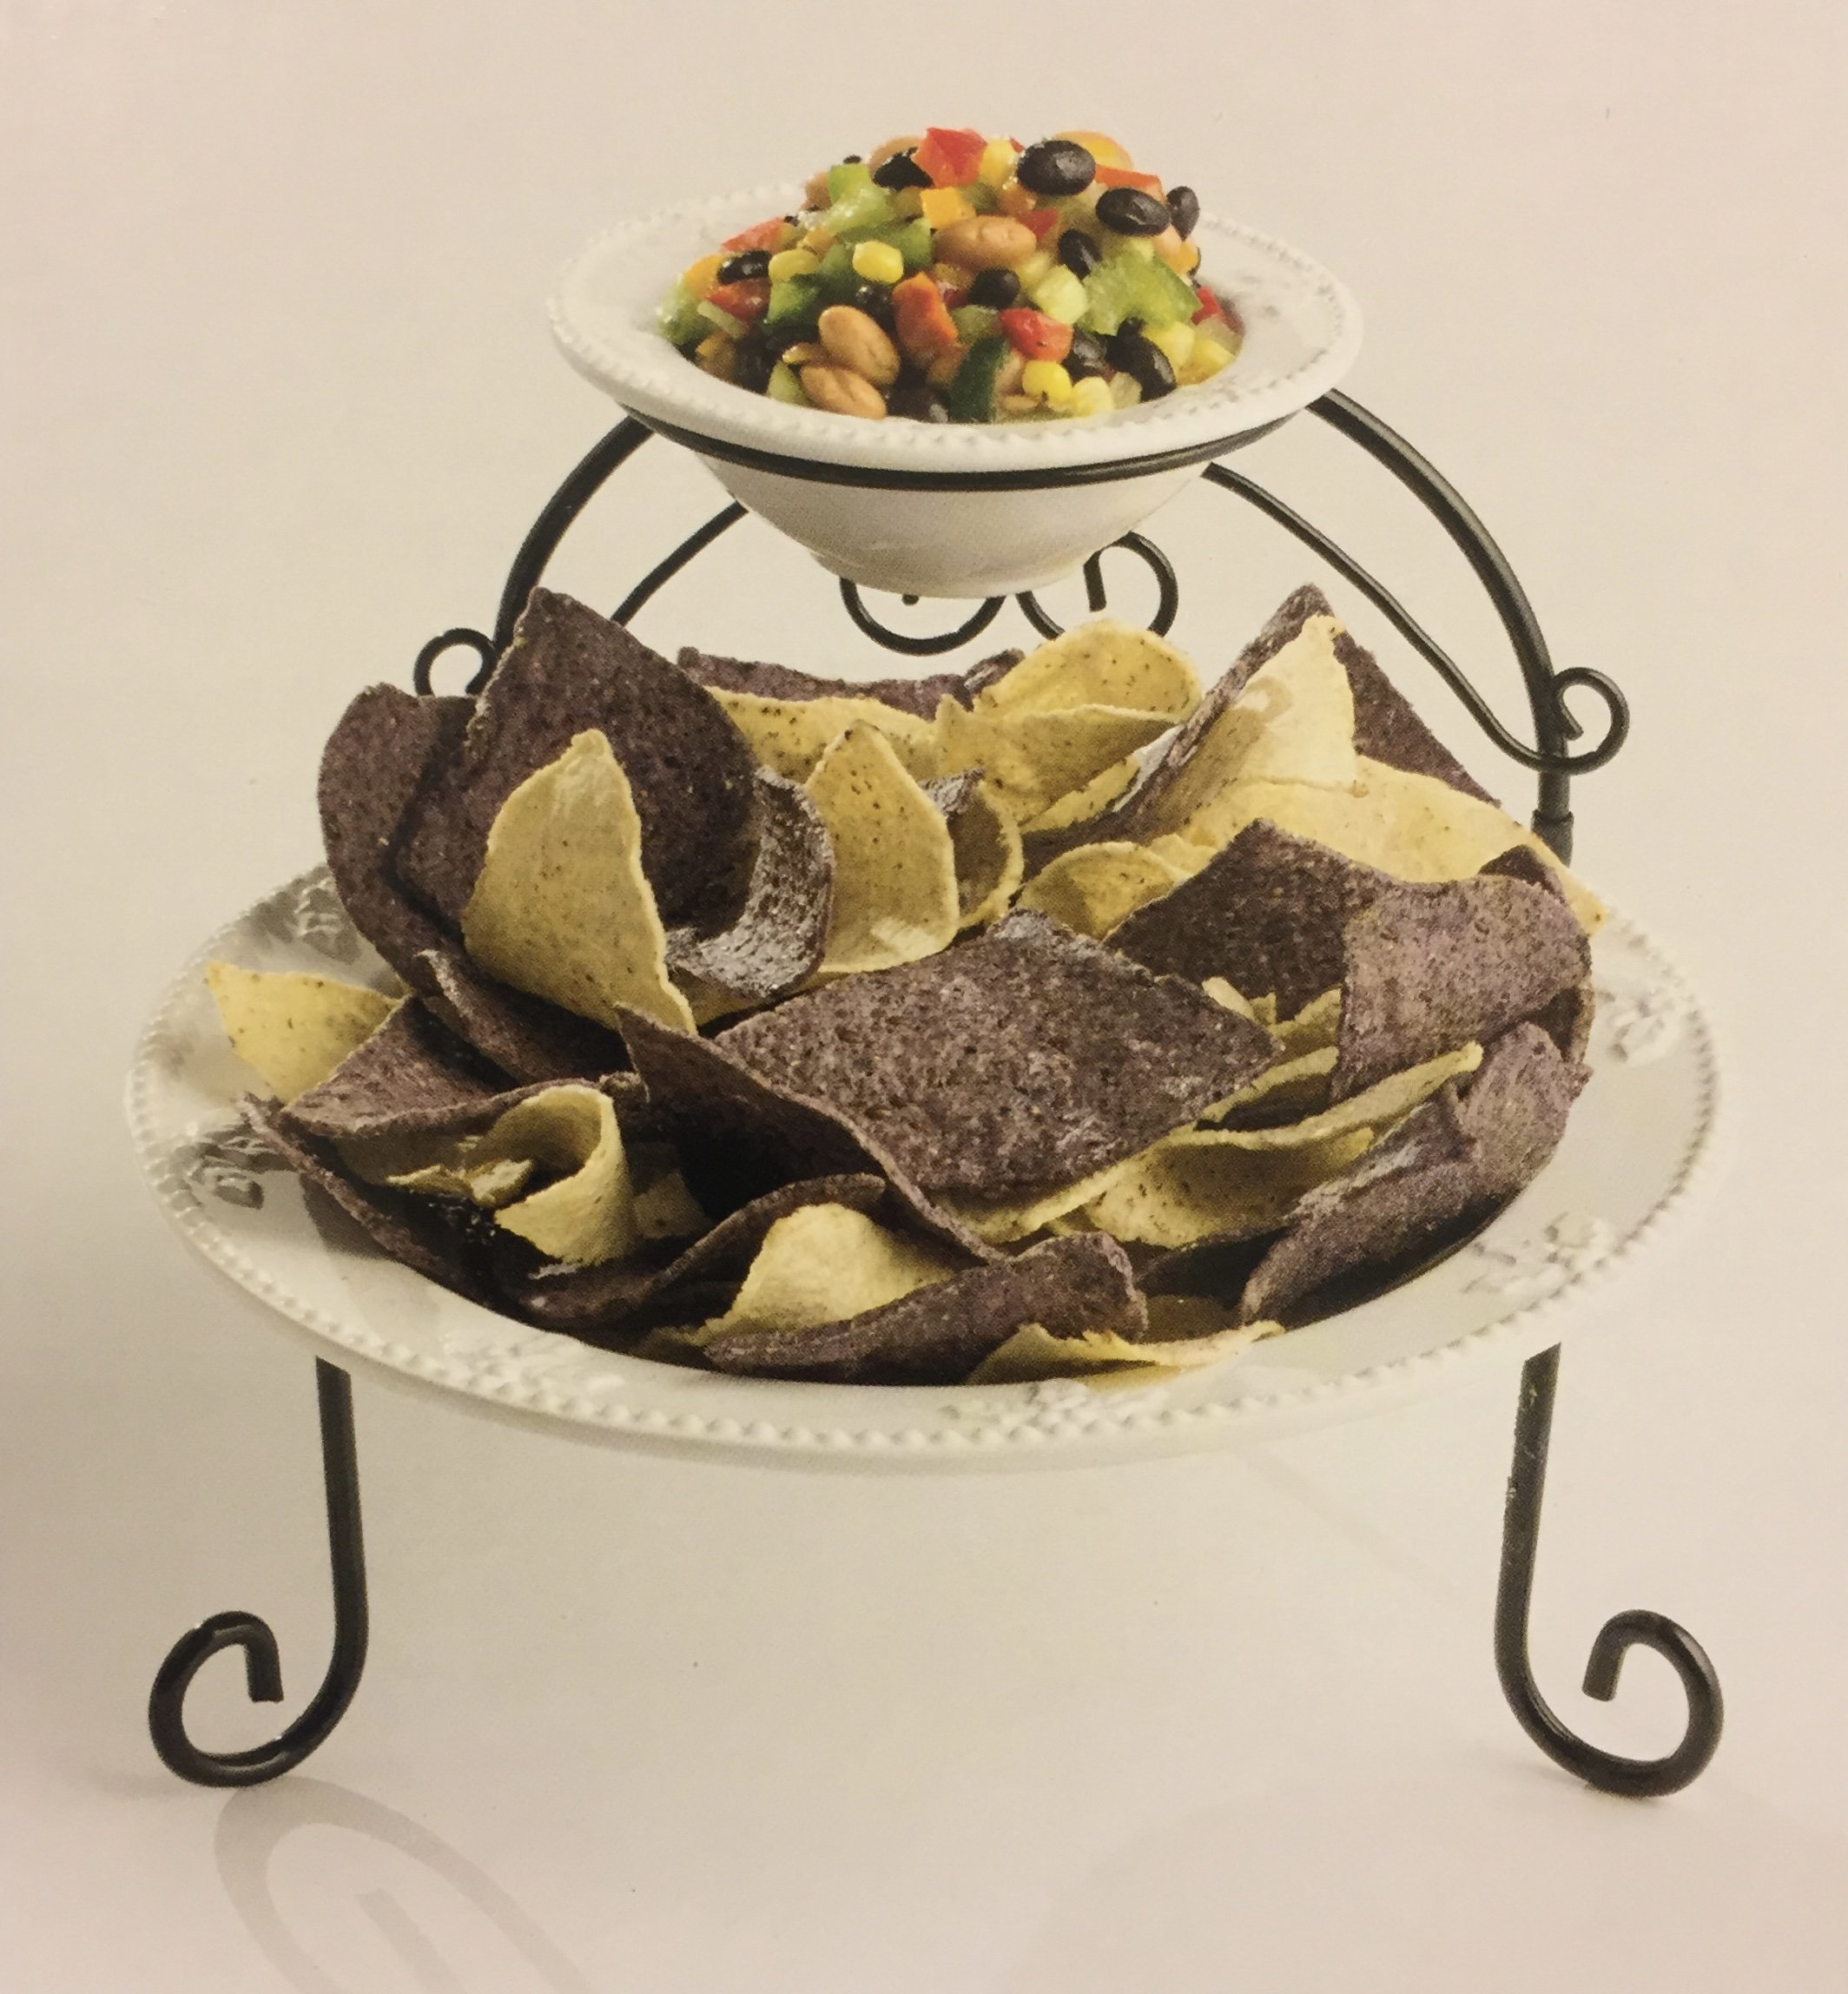 2 Tiered Serving Tray - Ceramic, Chip & Dip